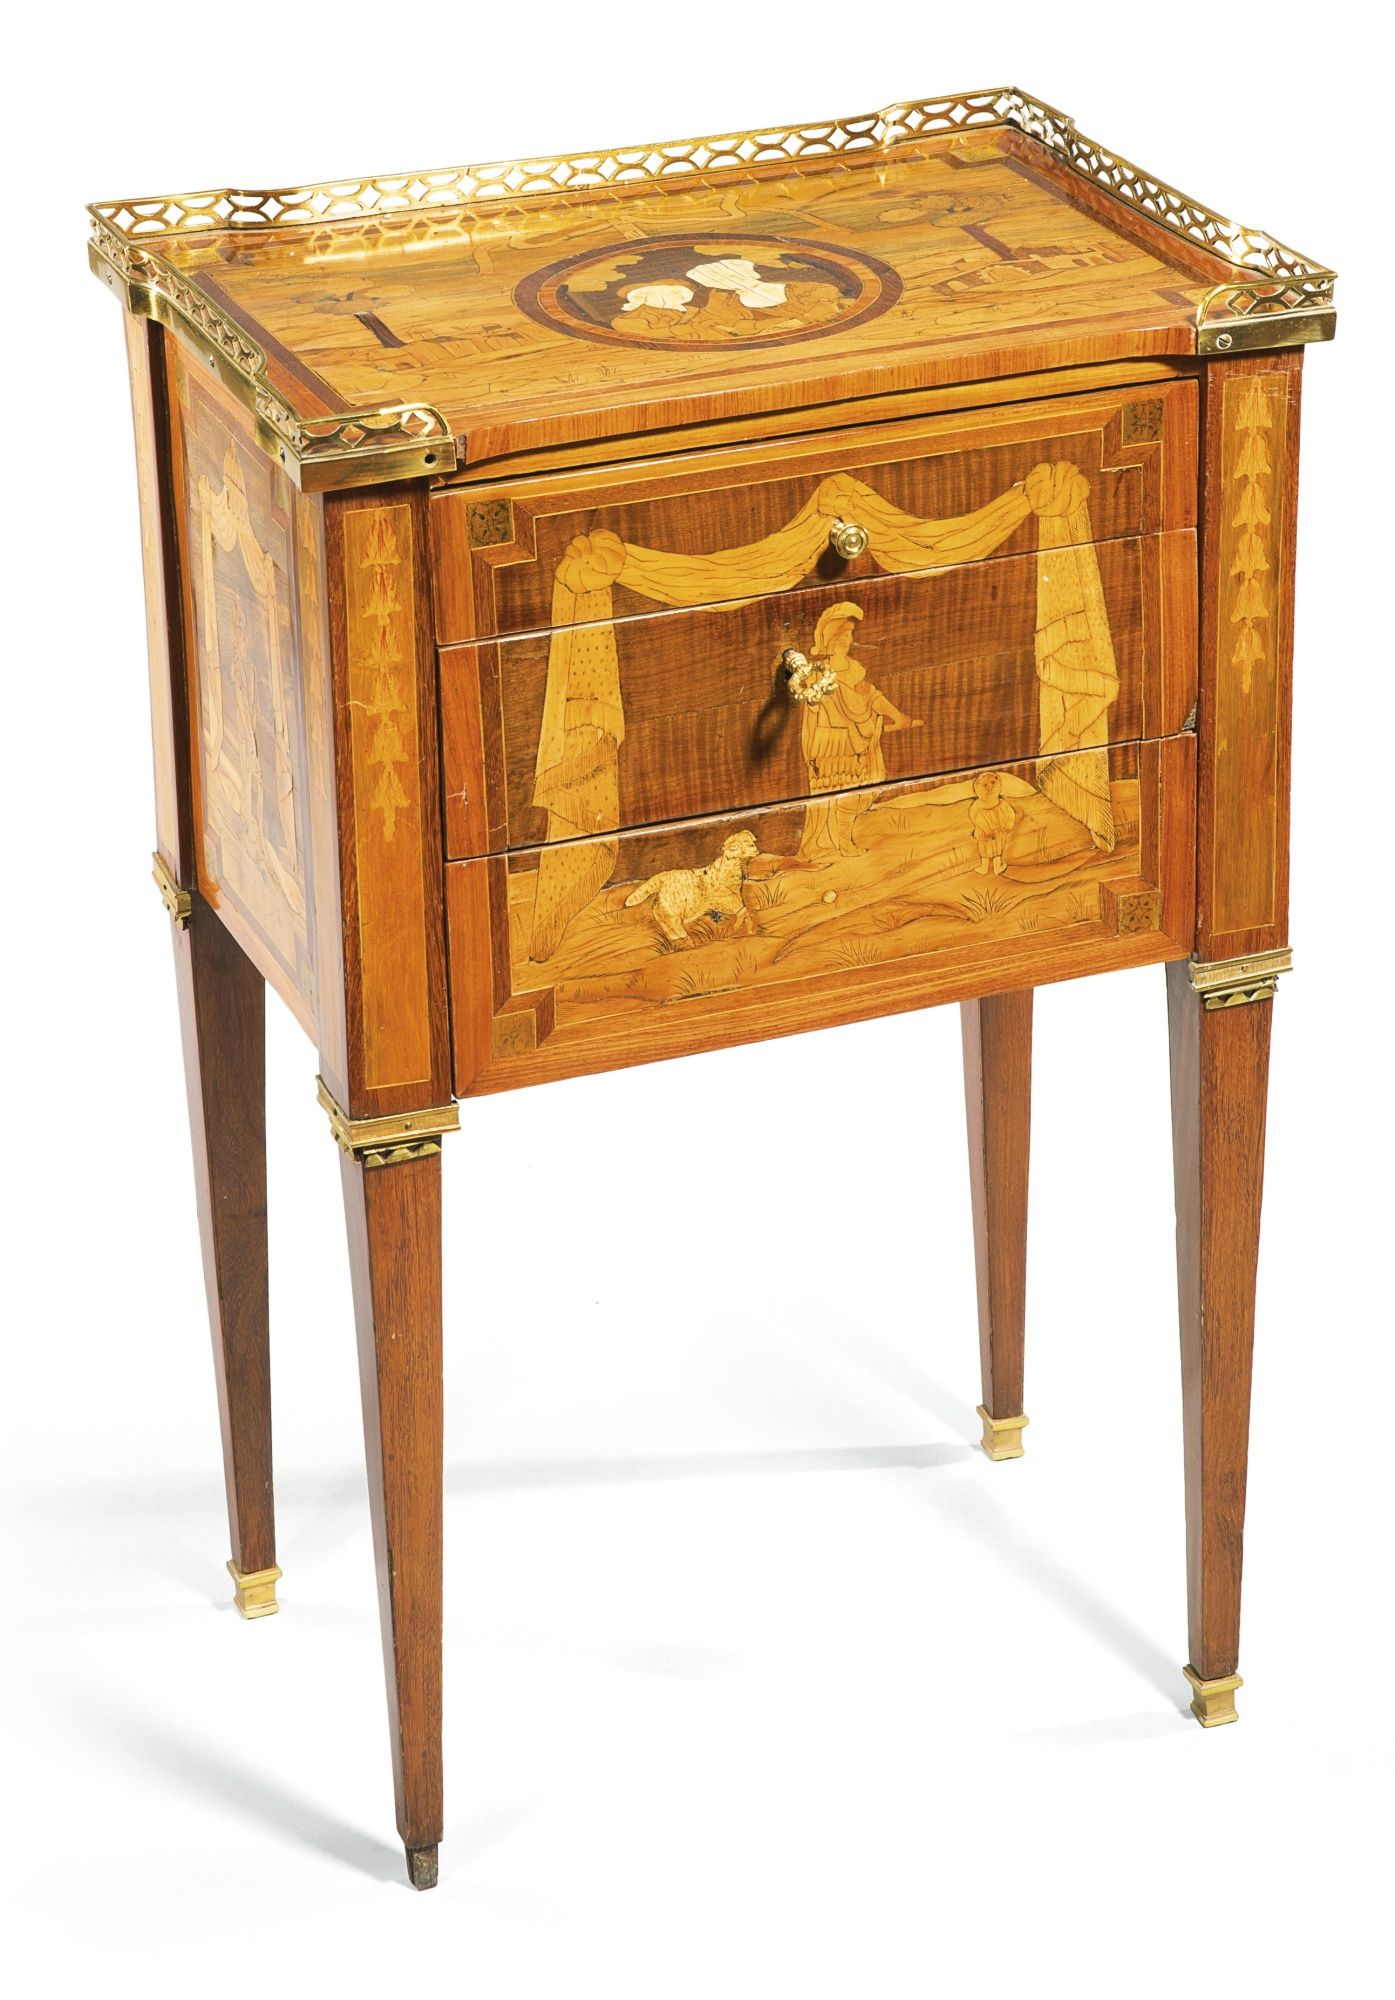 An ivory inlaid sycamore, fruitwood and amaranth marquetry table en chiffonière stamped Delorme, Louis XVI, circa 1780 the rectangular galleried top inlaid with a medallion of lovers with ivory faces set against a landscape, the front and sides with figures of Mars beneath drapery, with three drawers, the top one fitted for writing implements and a silk lined writing slide on square tapering legs headed by guttae, with gilt-bronze mounts throughout